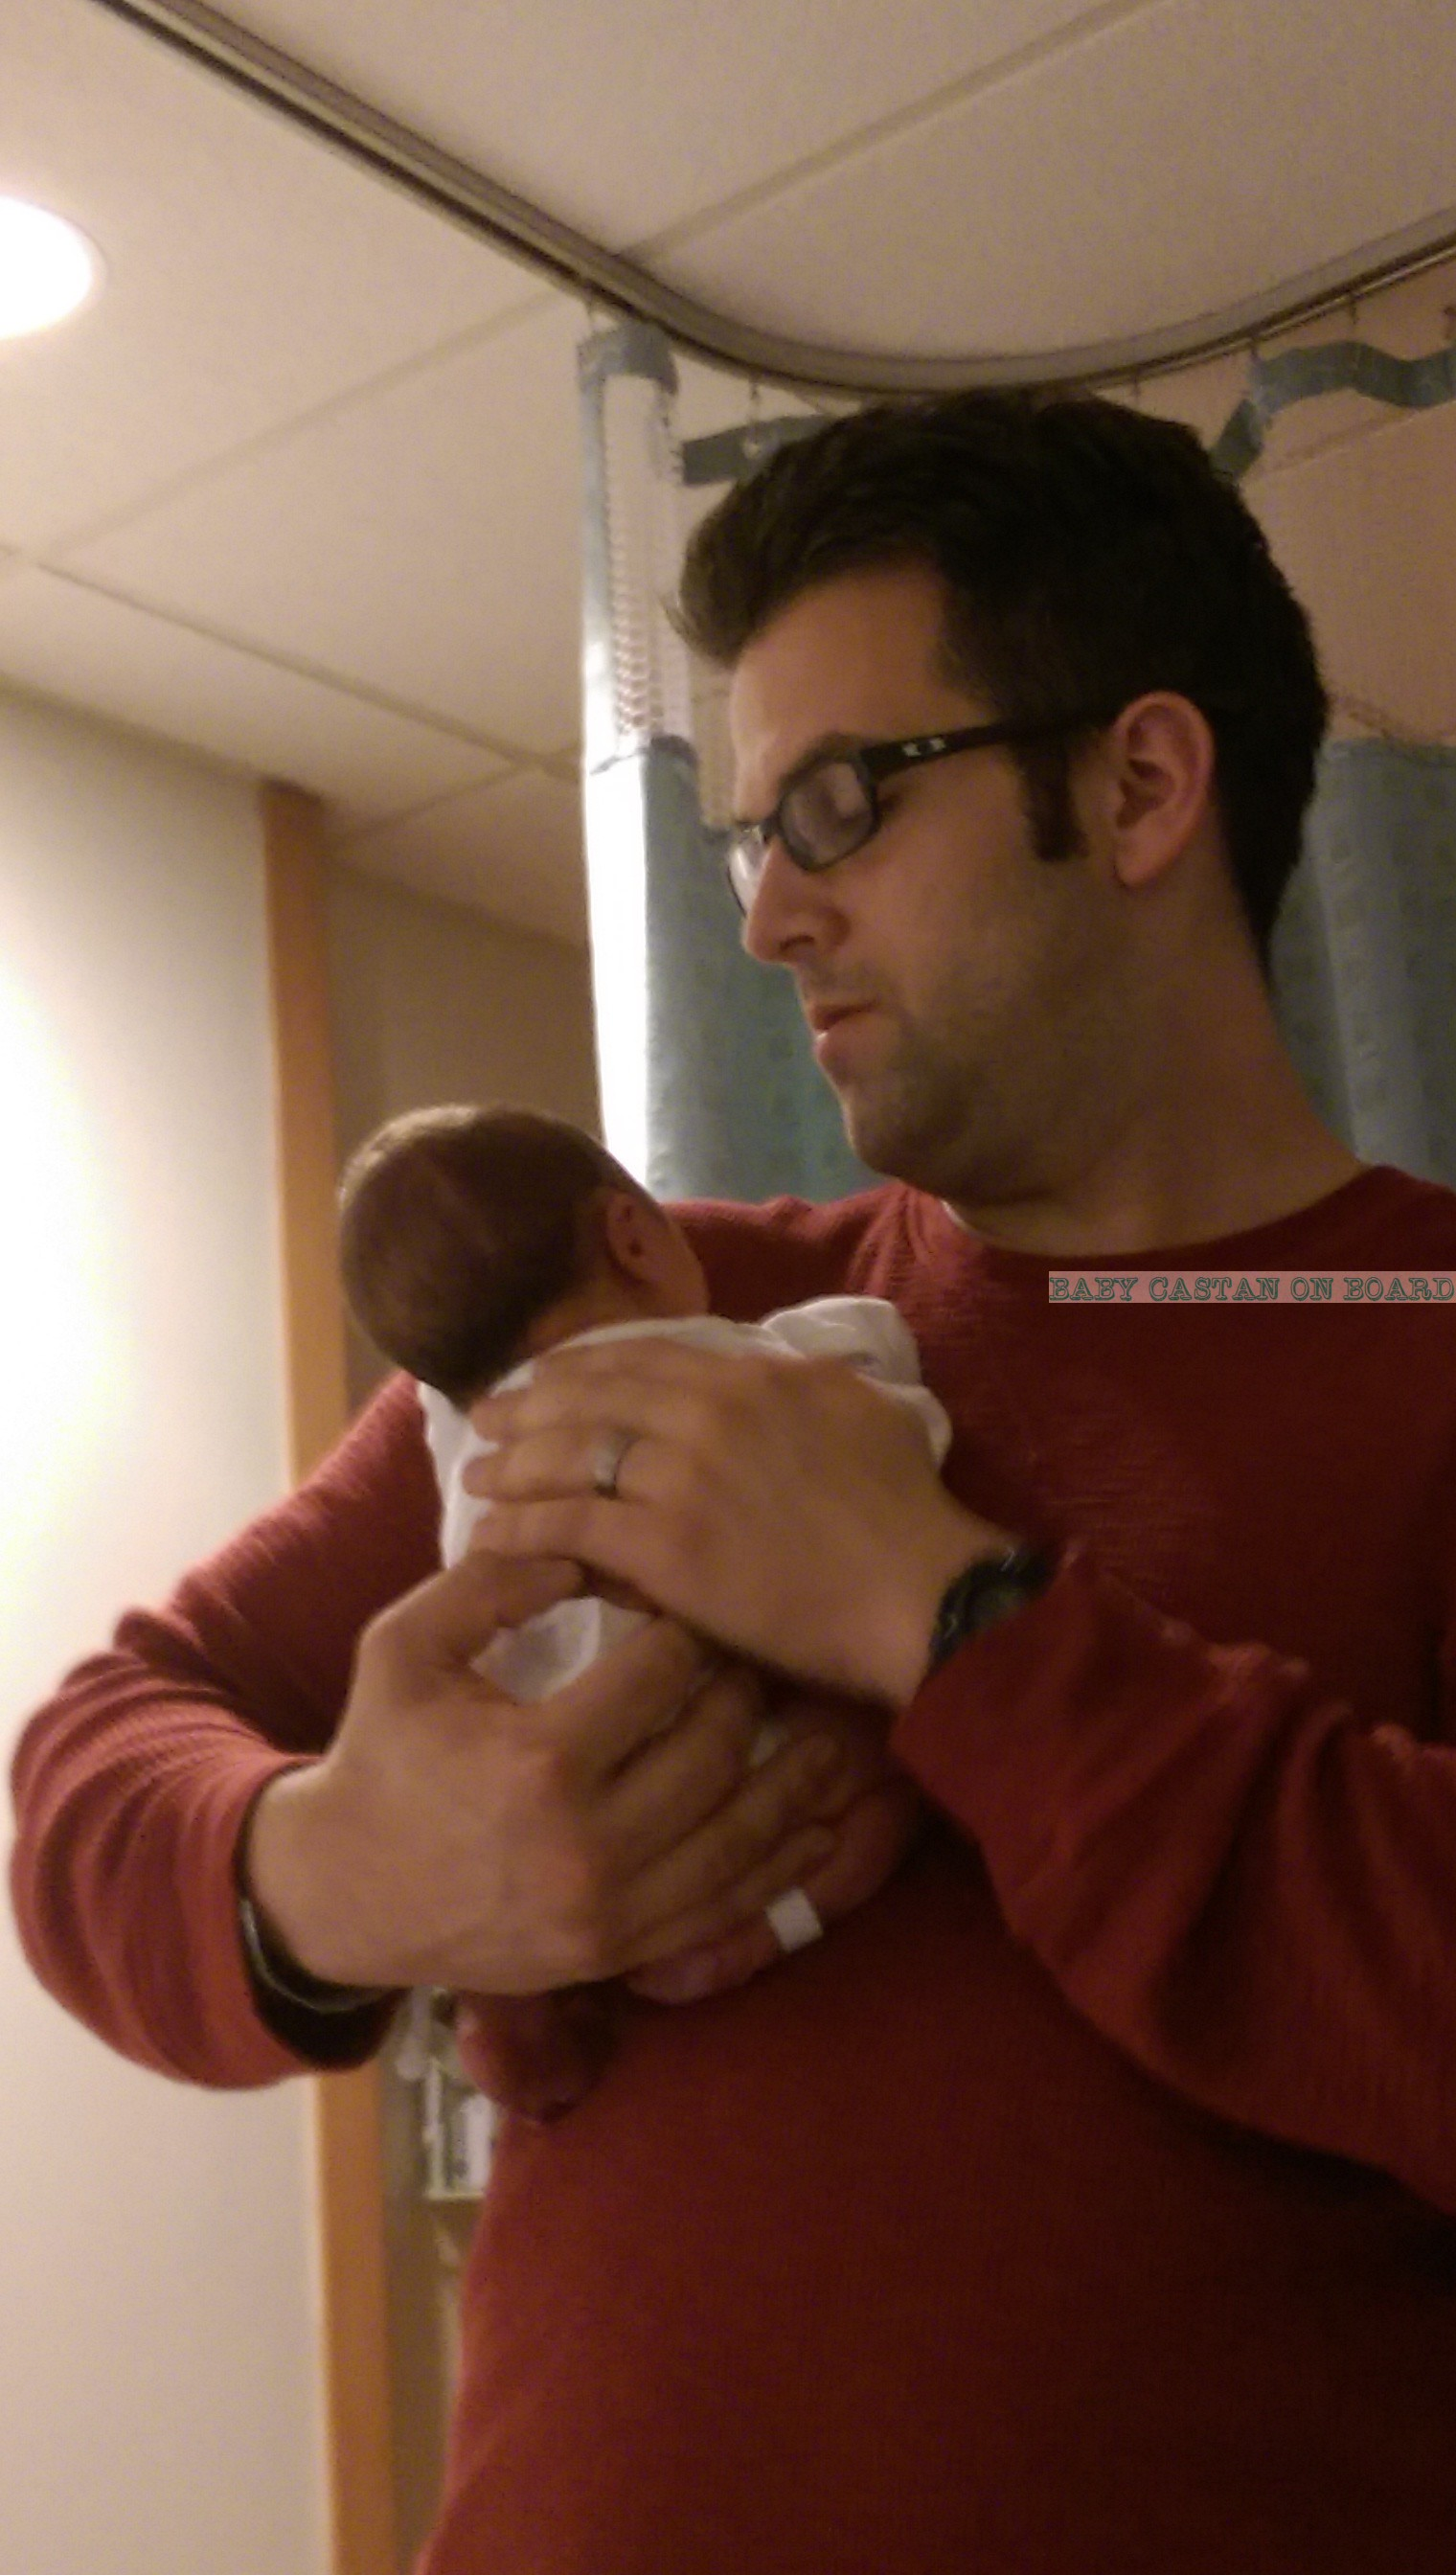 Bringing-home-baby-hospital-experience